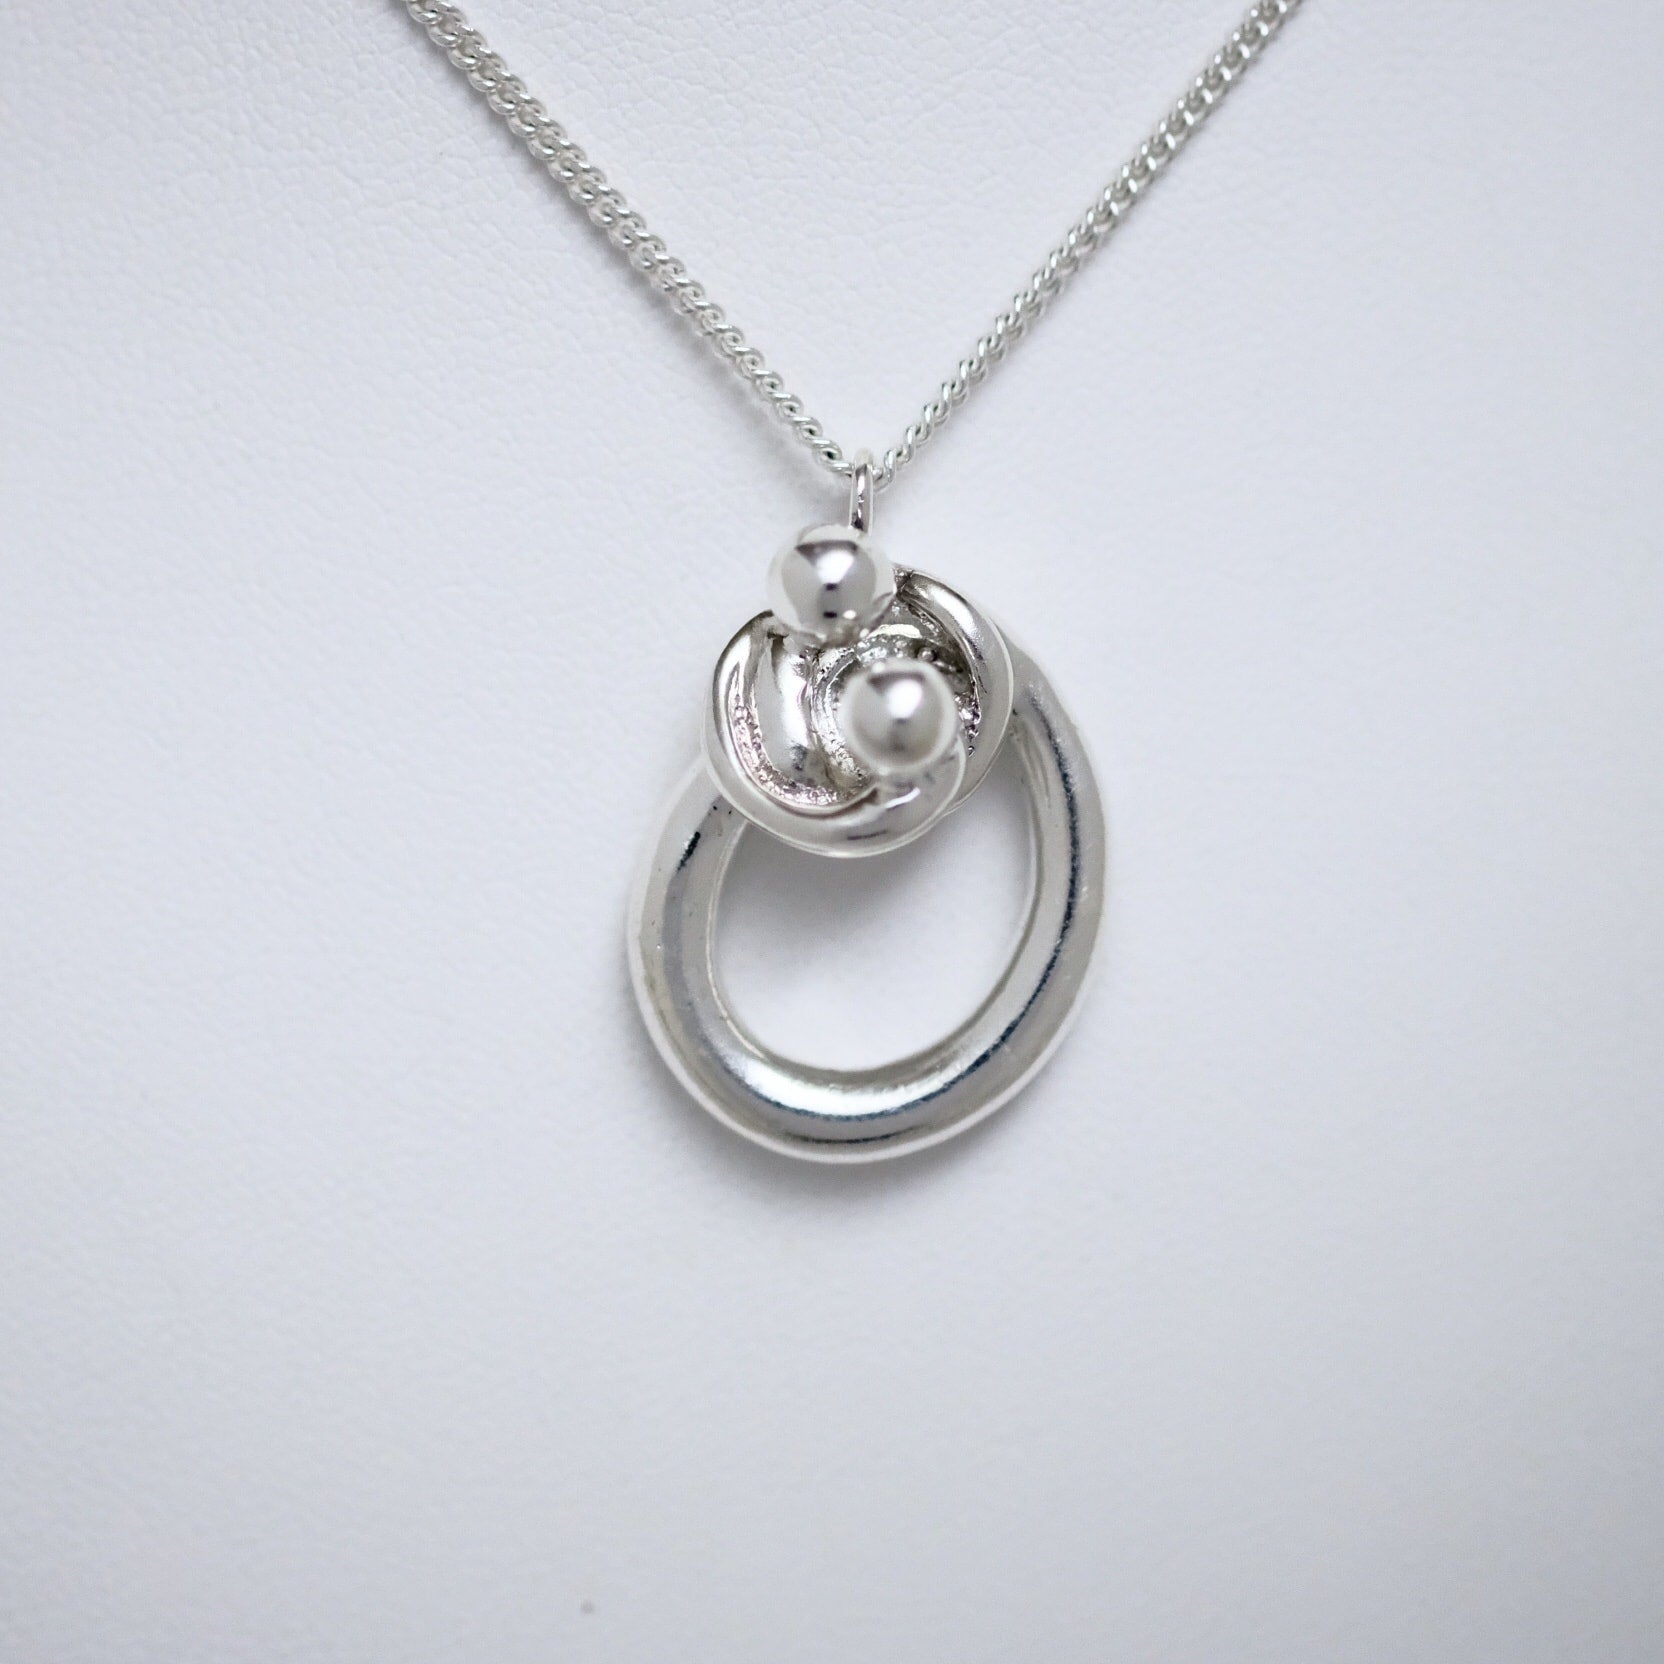 Entangle single size sterling silver pendant by Joseph Chiang